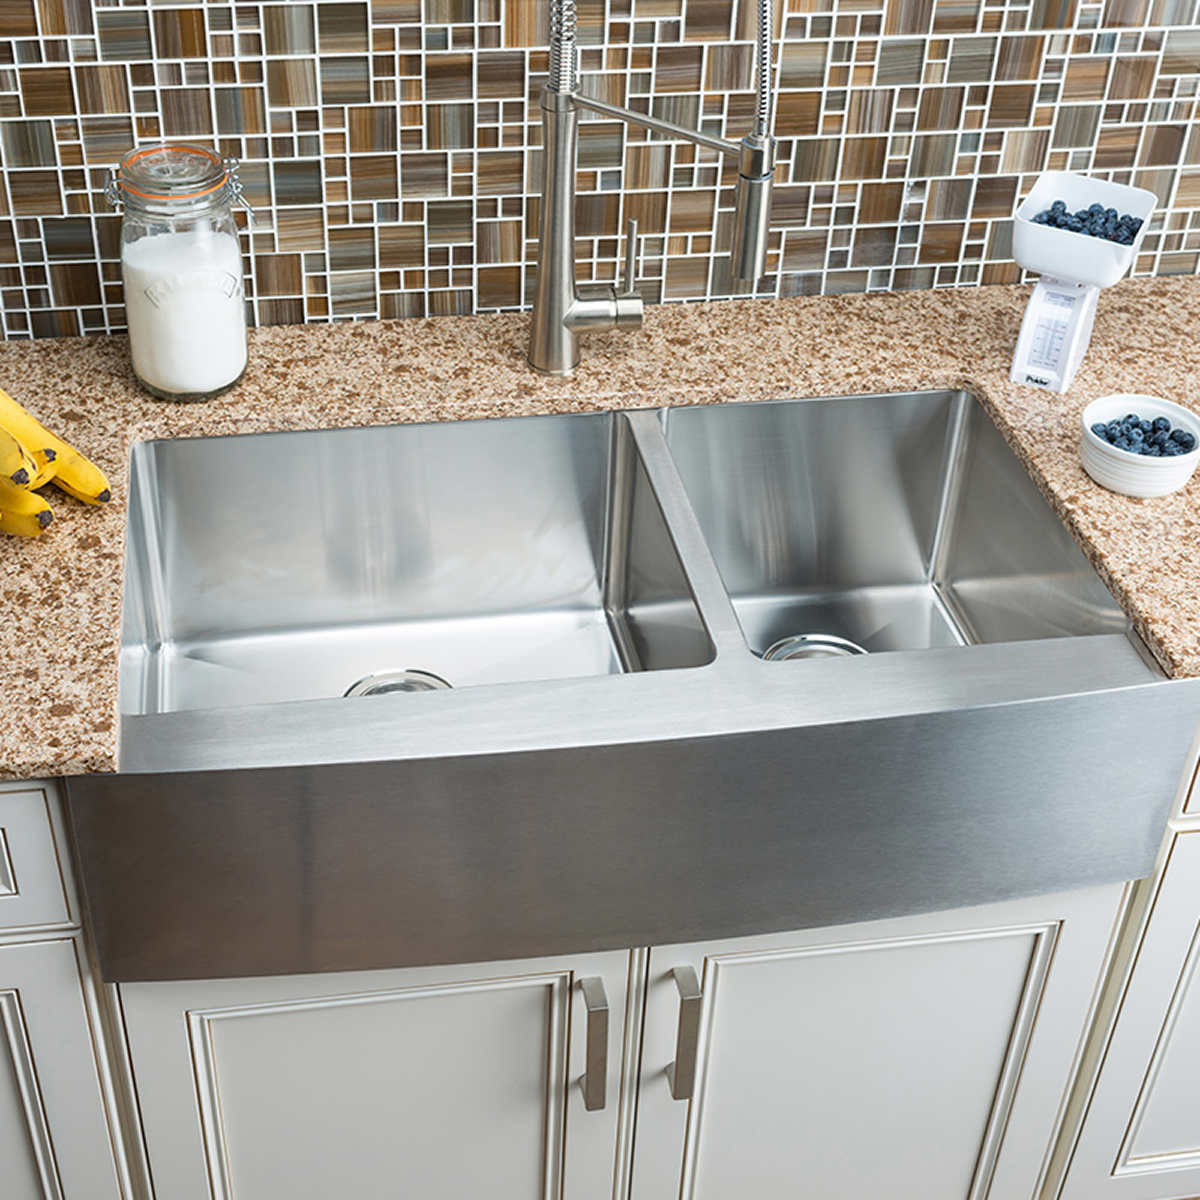 Undermount Kitchen Sinks Undermount Kitchen Sinks  Costco